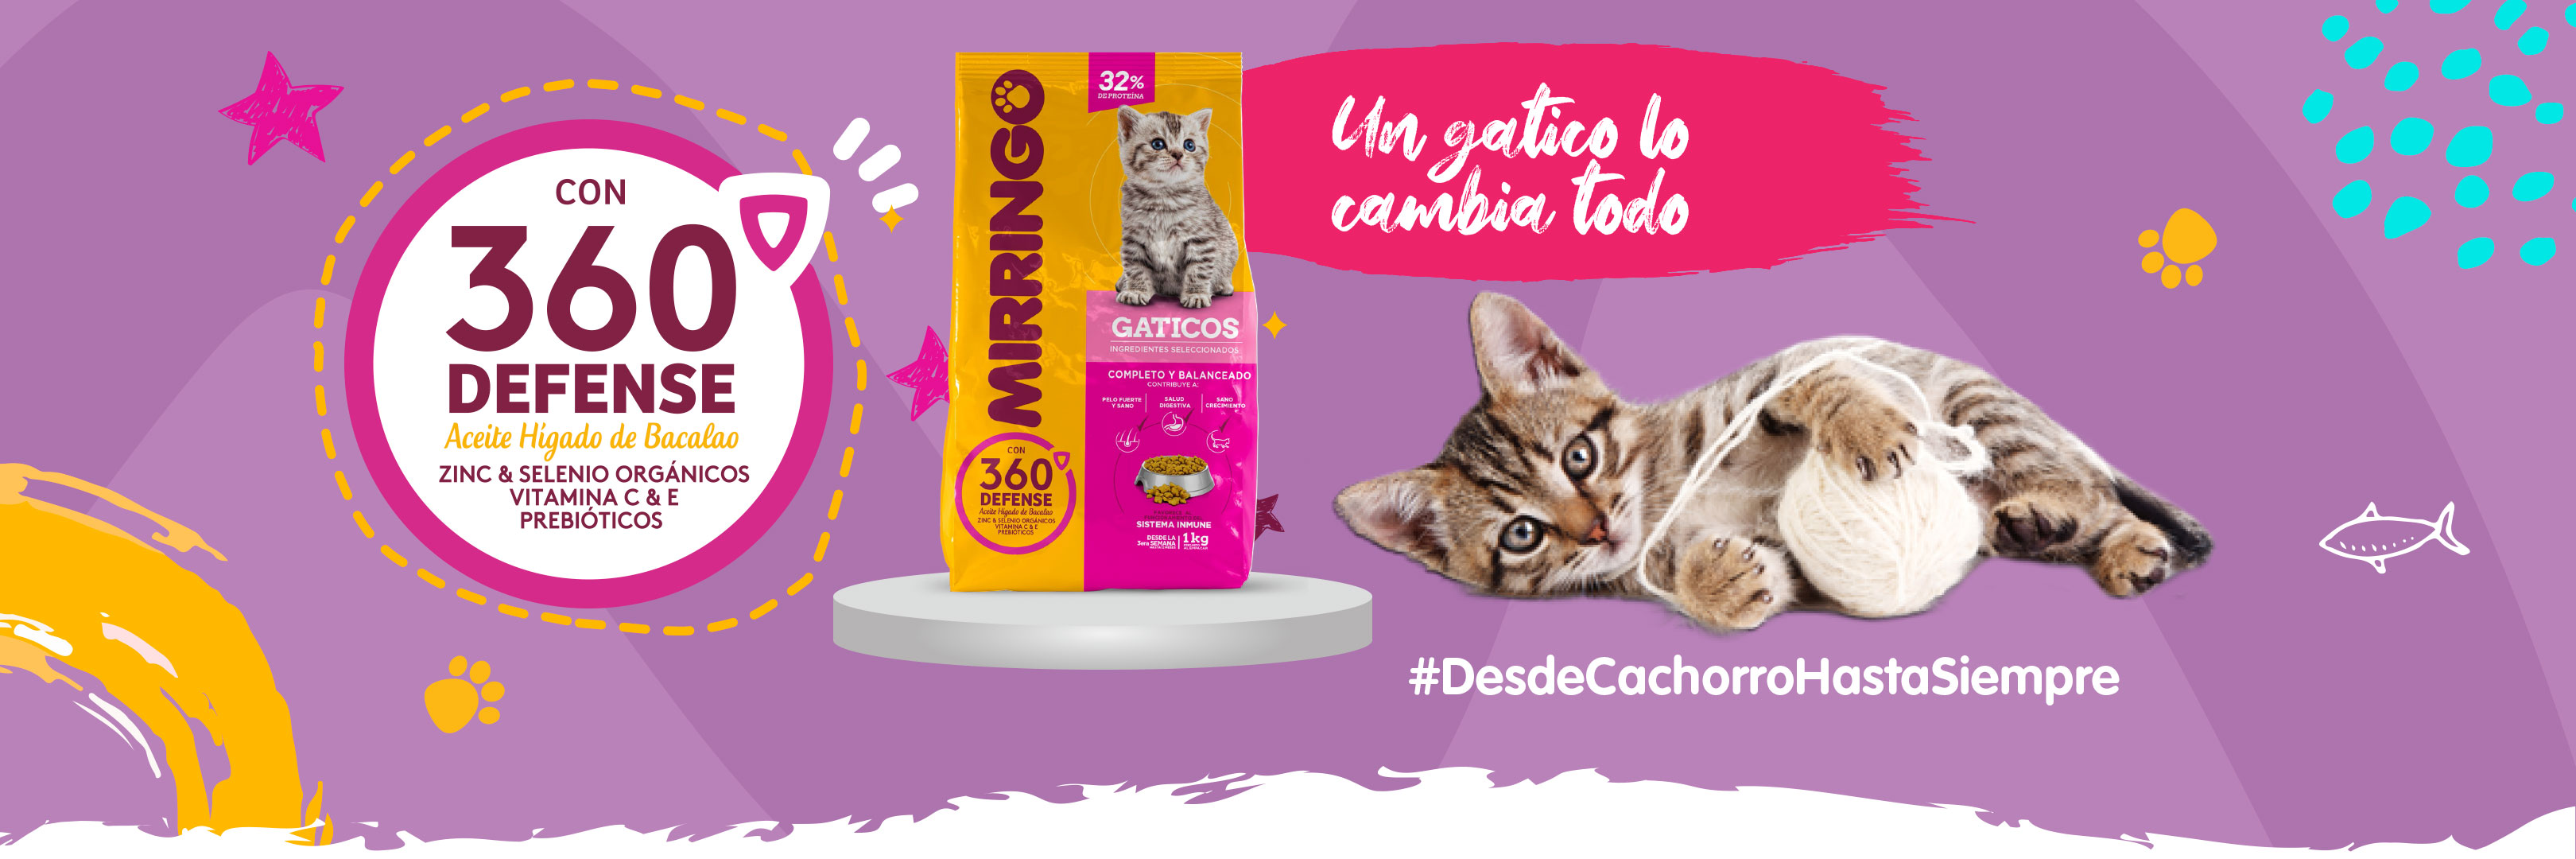 Banner producto cachorros